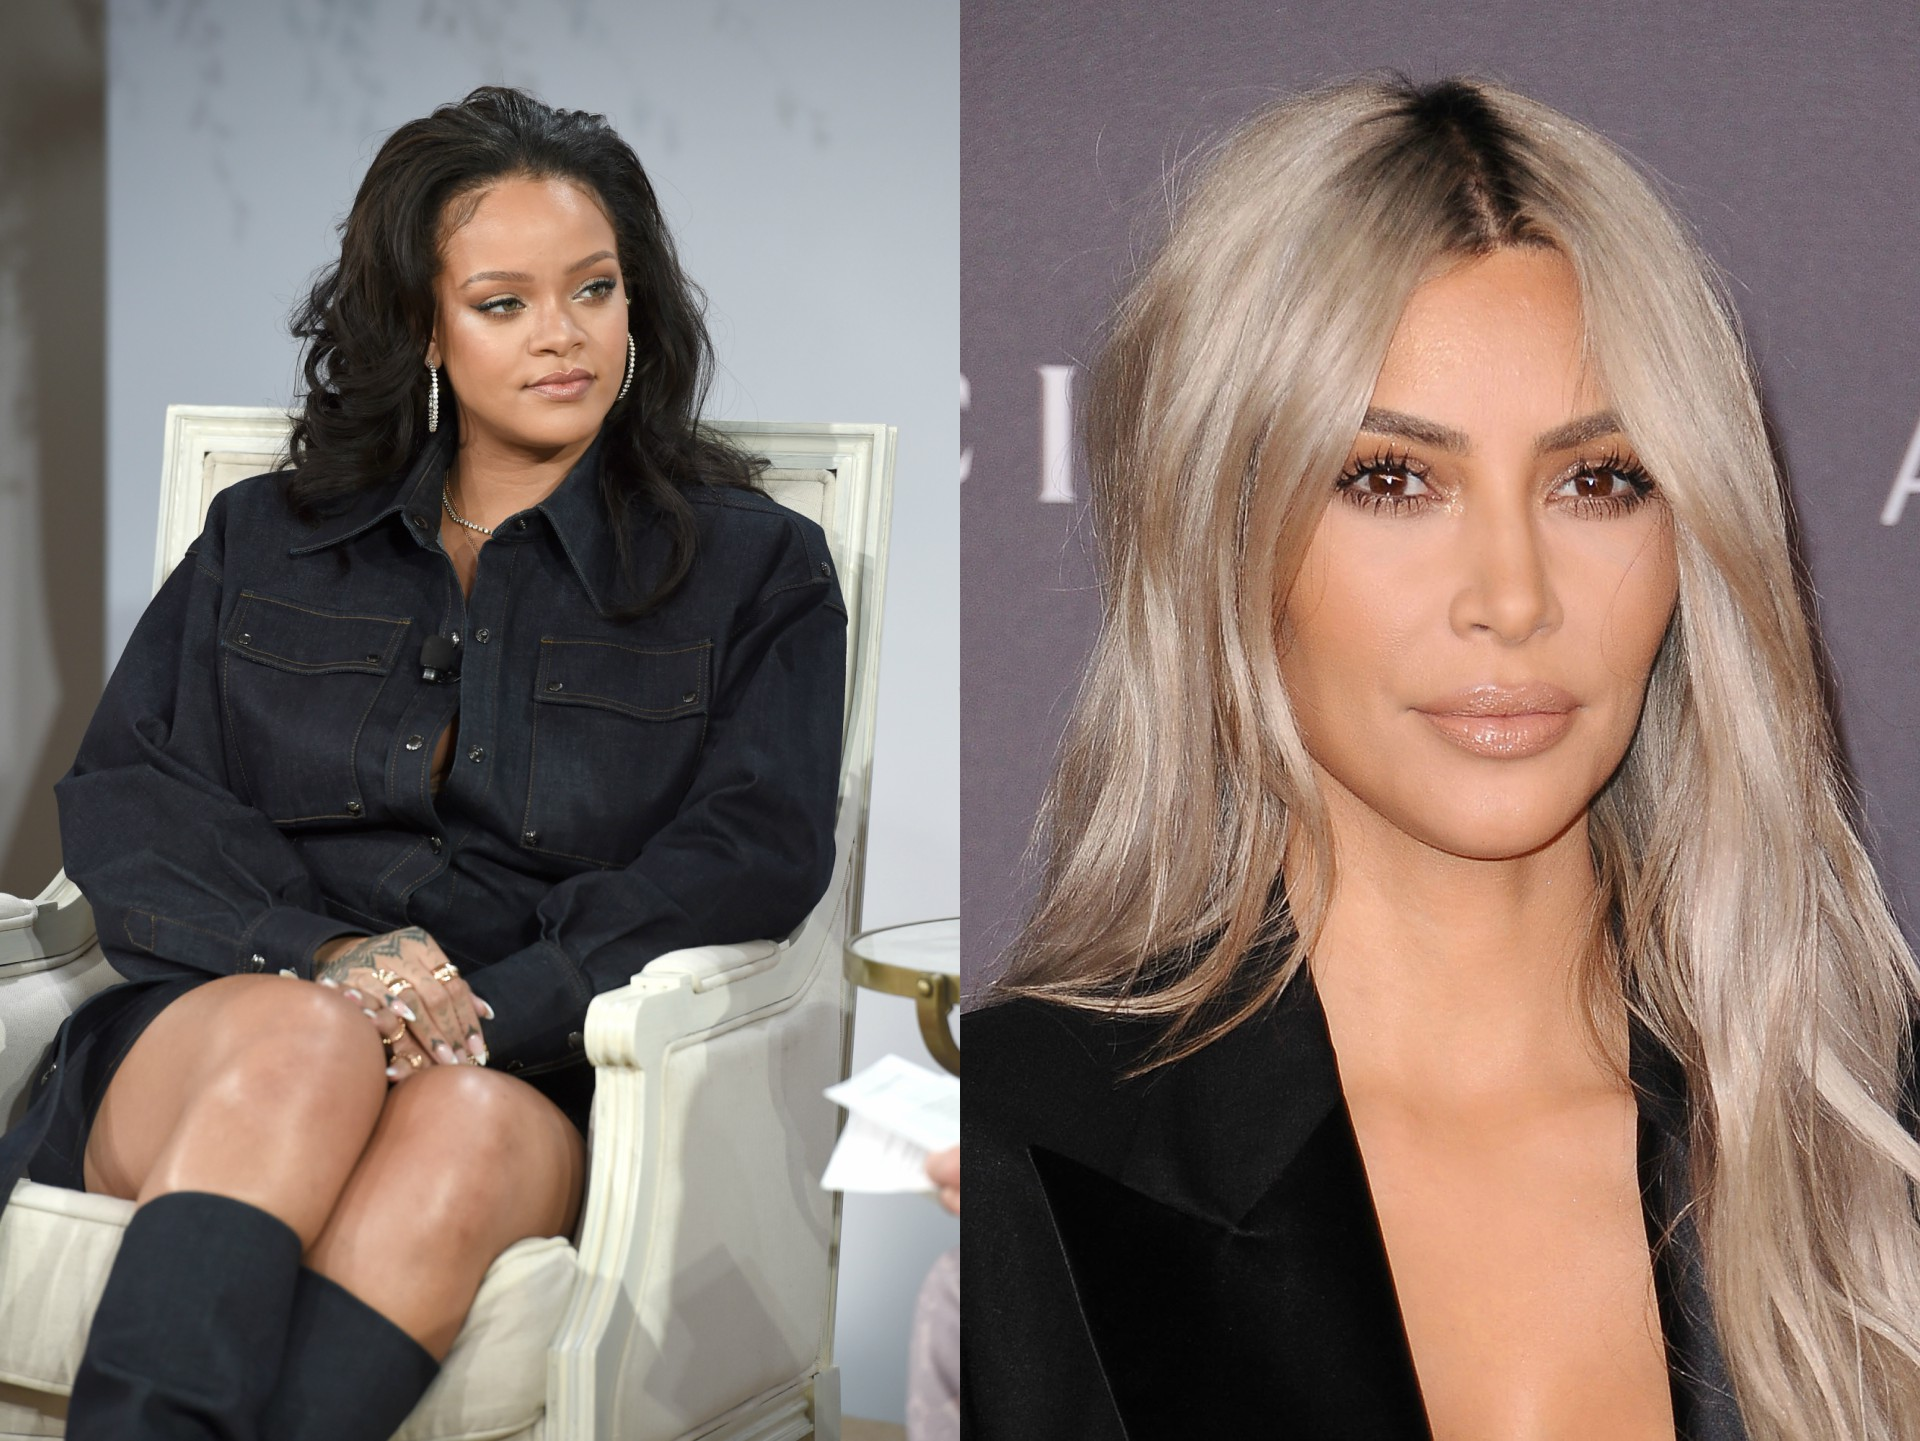 Kim Kardashian Says She's Phoned Her Lawyers for Cyntoia Brown